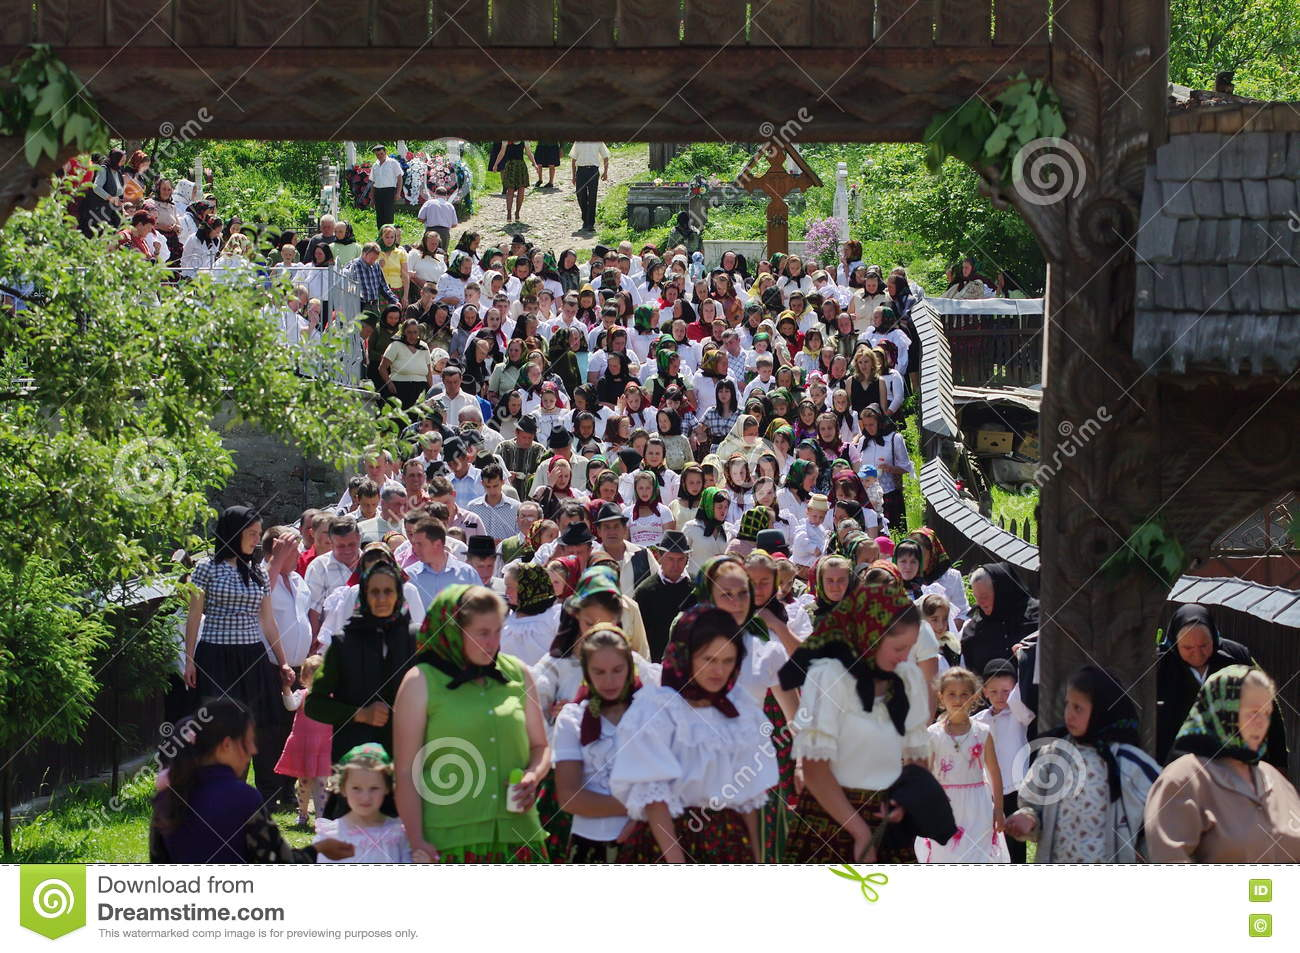 People in traditional national costume - landmark attraction in Maramures, Romania